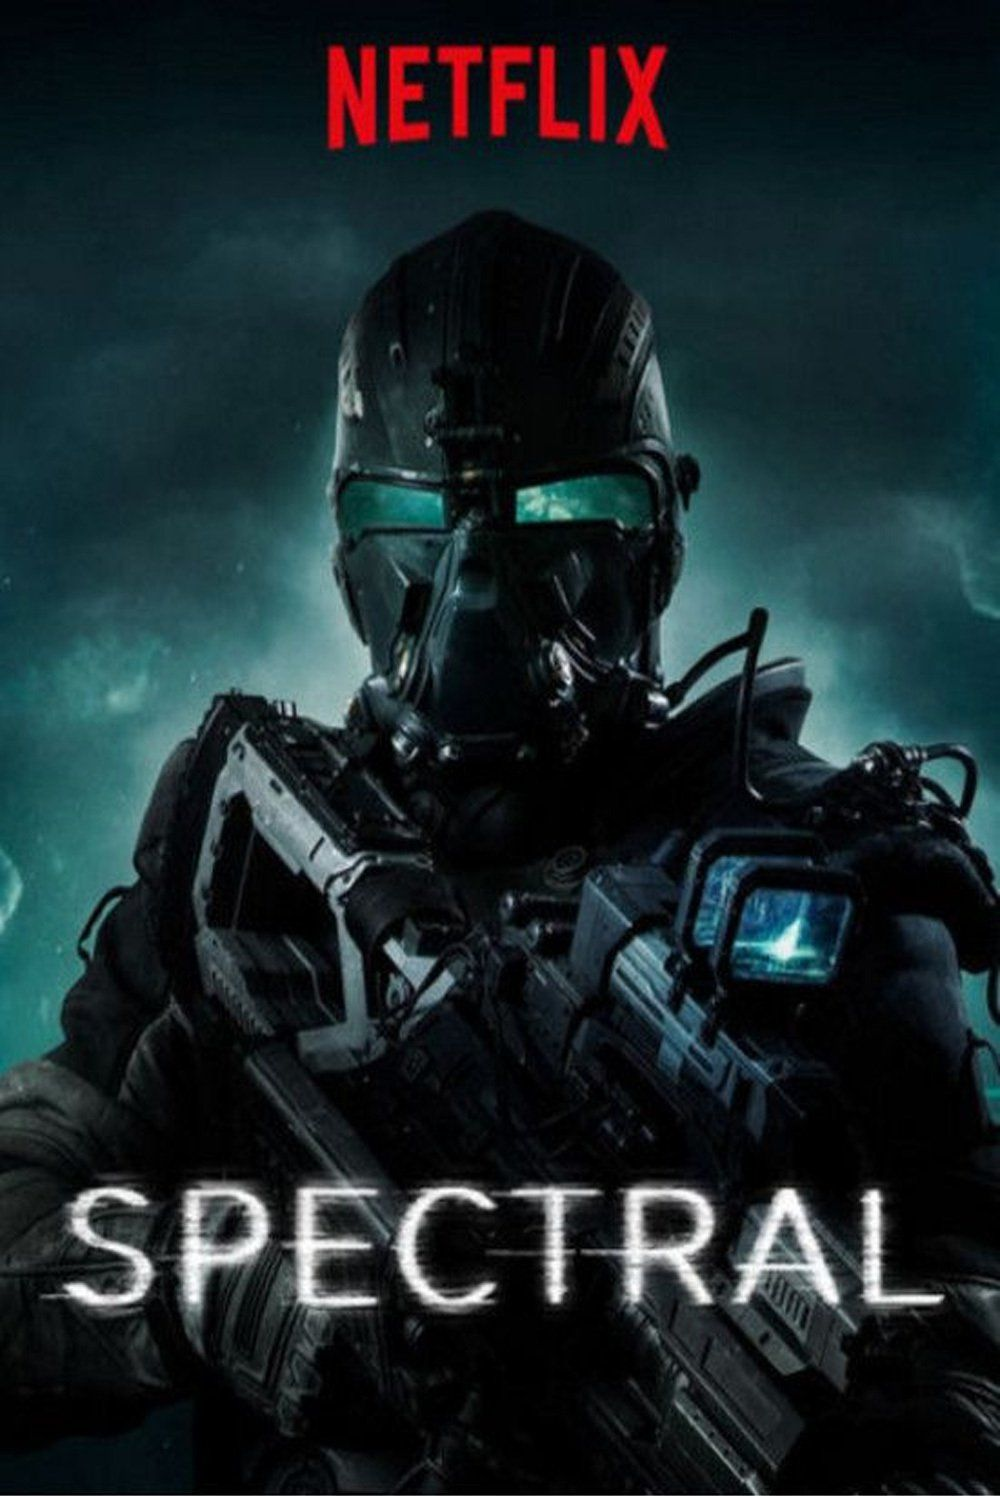 Spectral 2016 Pg 13 1h 47min Action Sci Fi Thriller Legendary Entertainment Netflix Original Streaming Movies Free Movies Online Spectral Movie